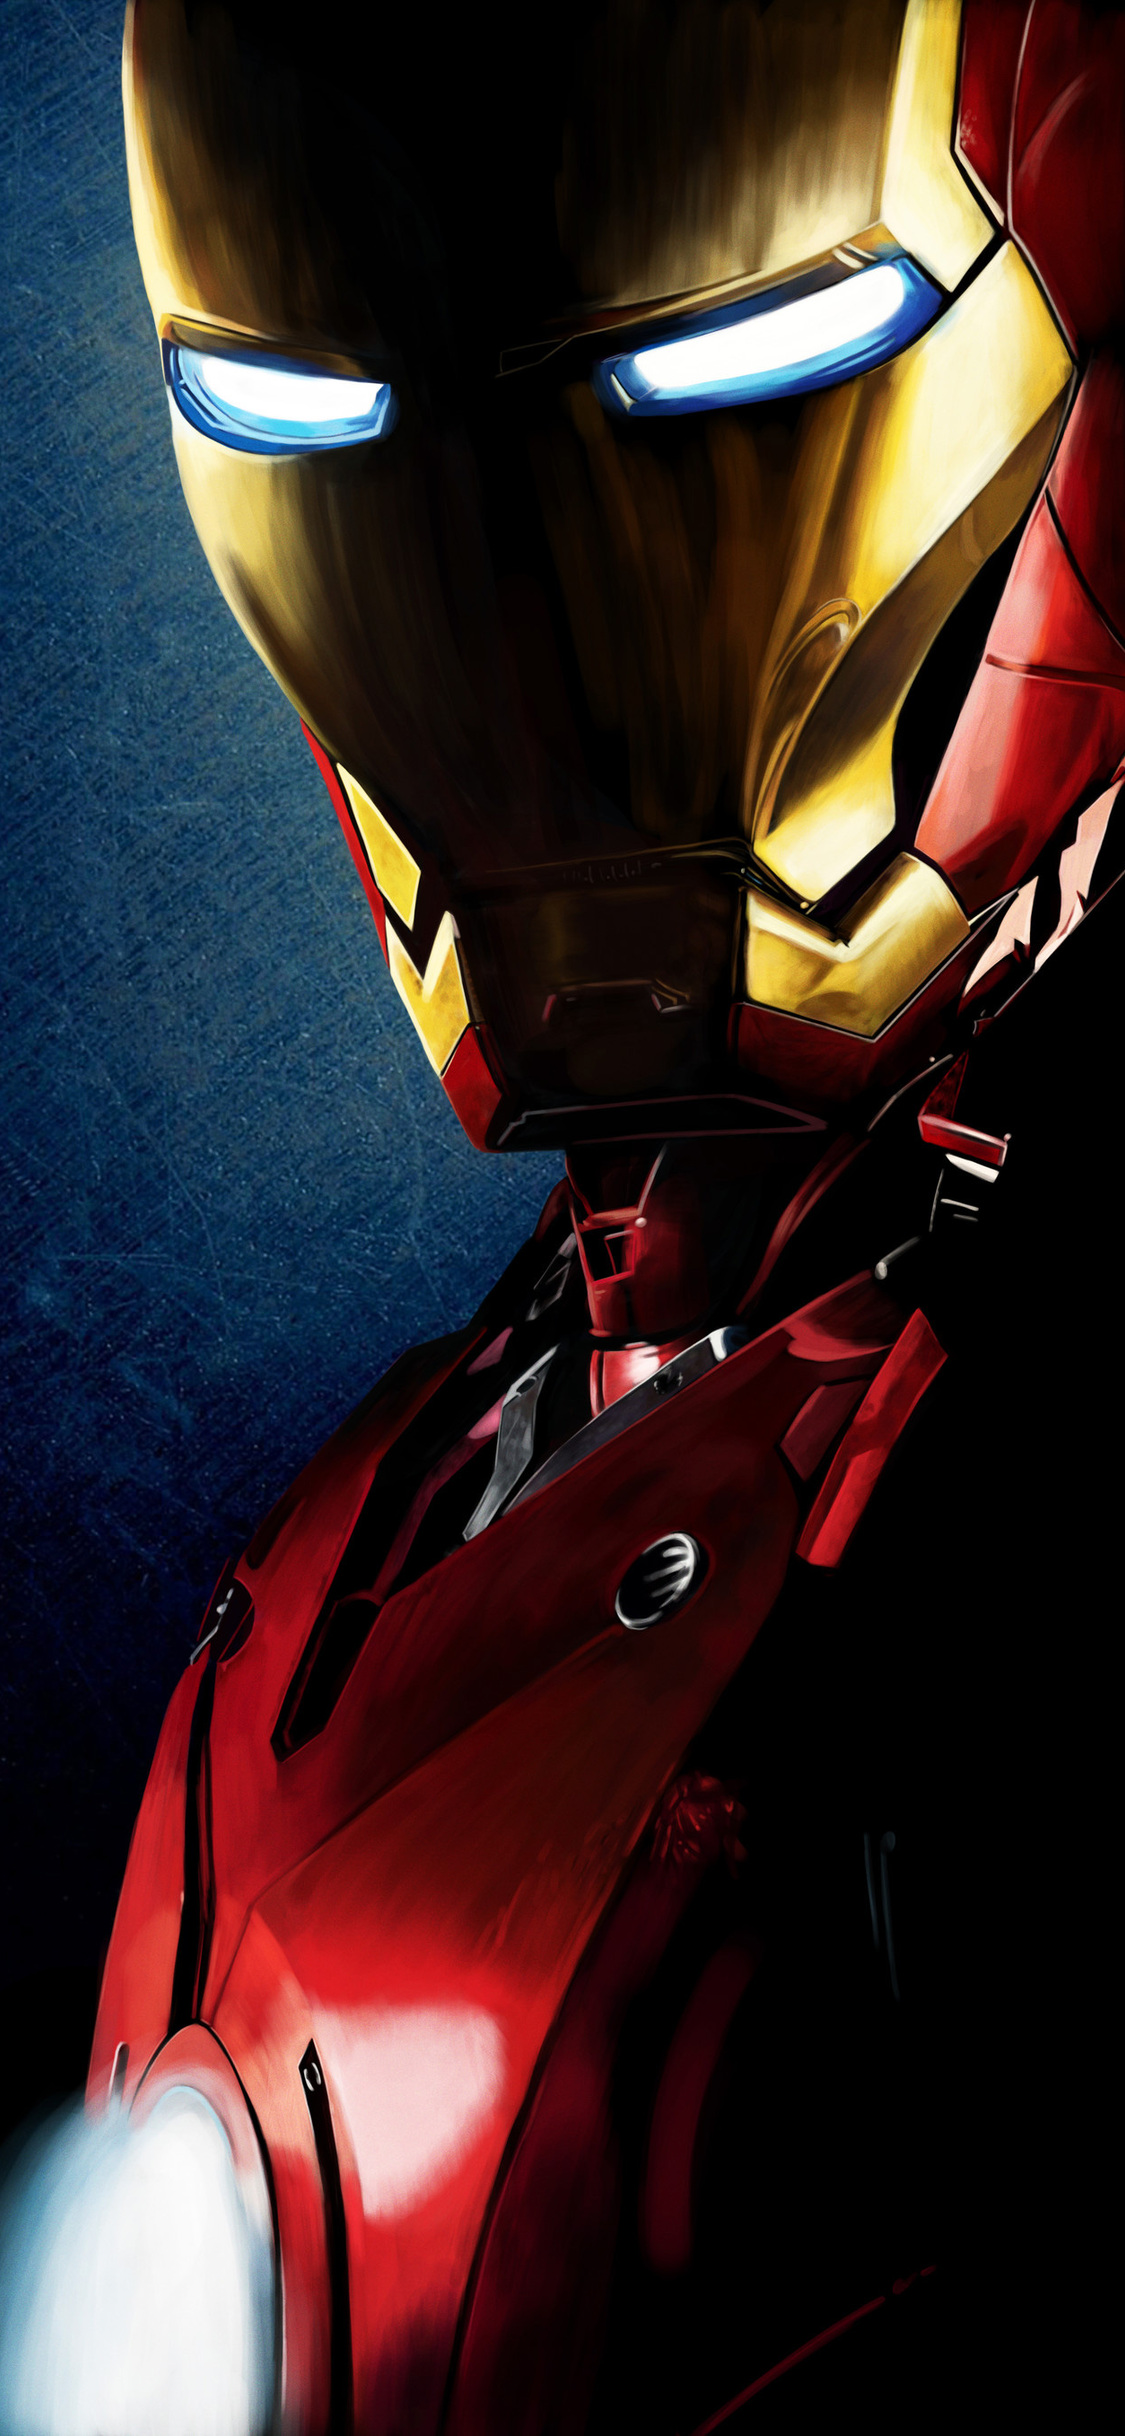 1125x2436 Iron Man 1080p Iphone Xsiphone 10iphone X Hd 4k